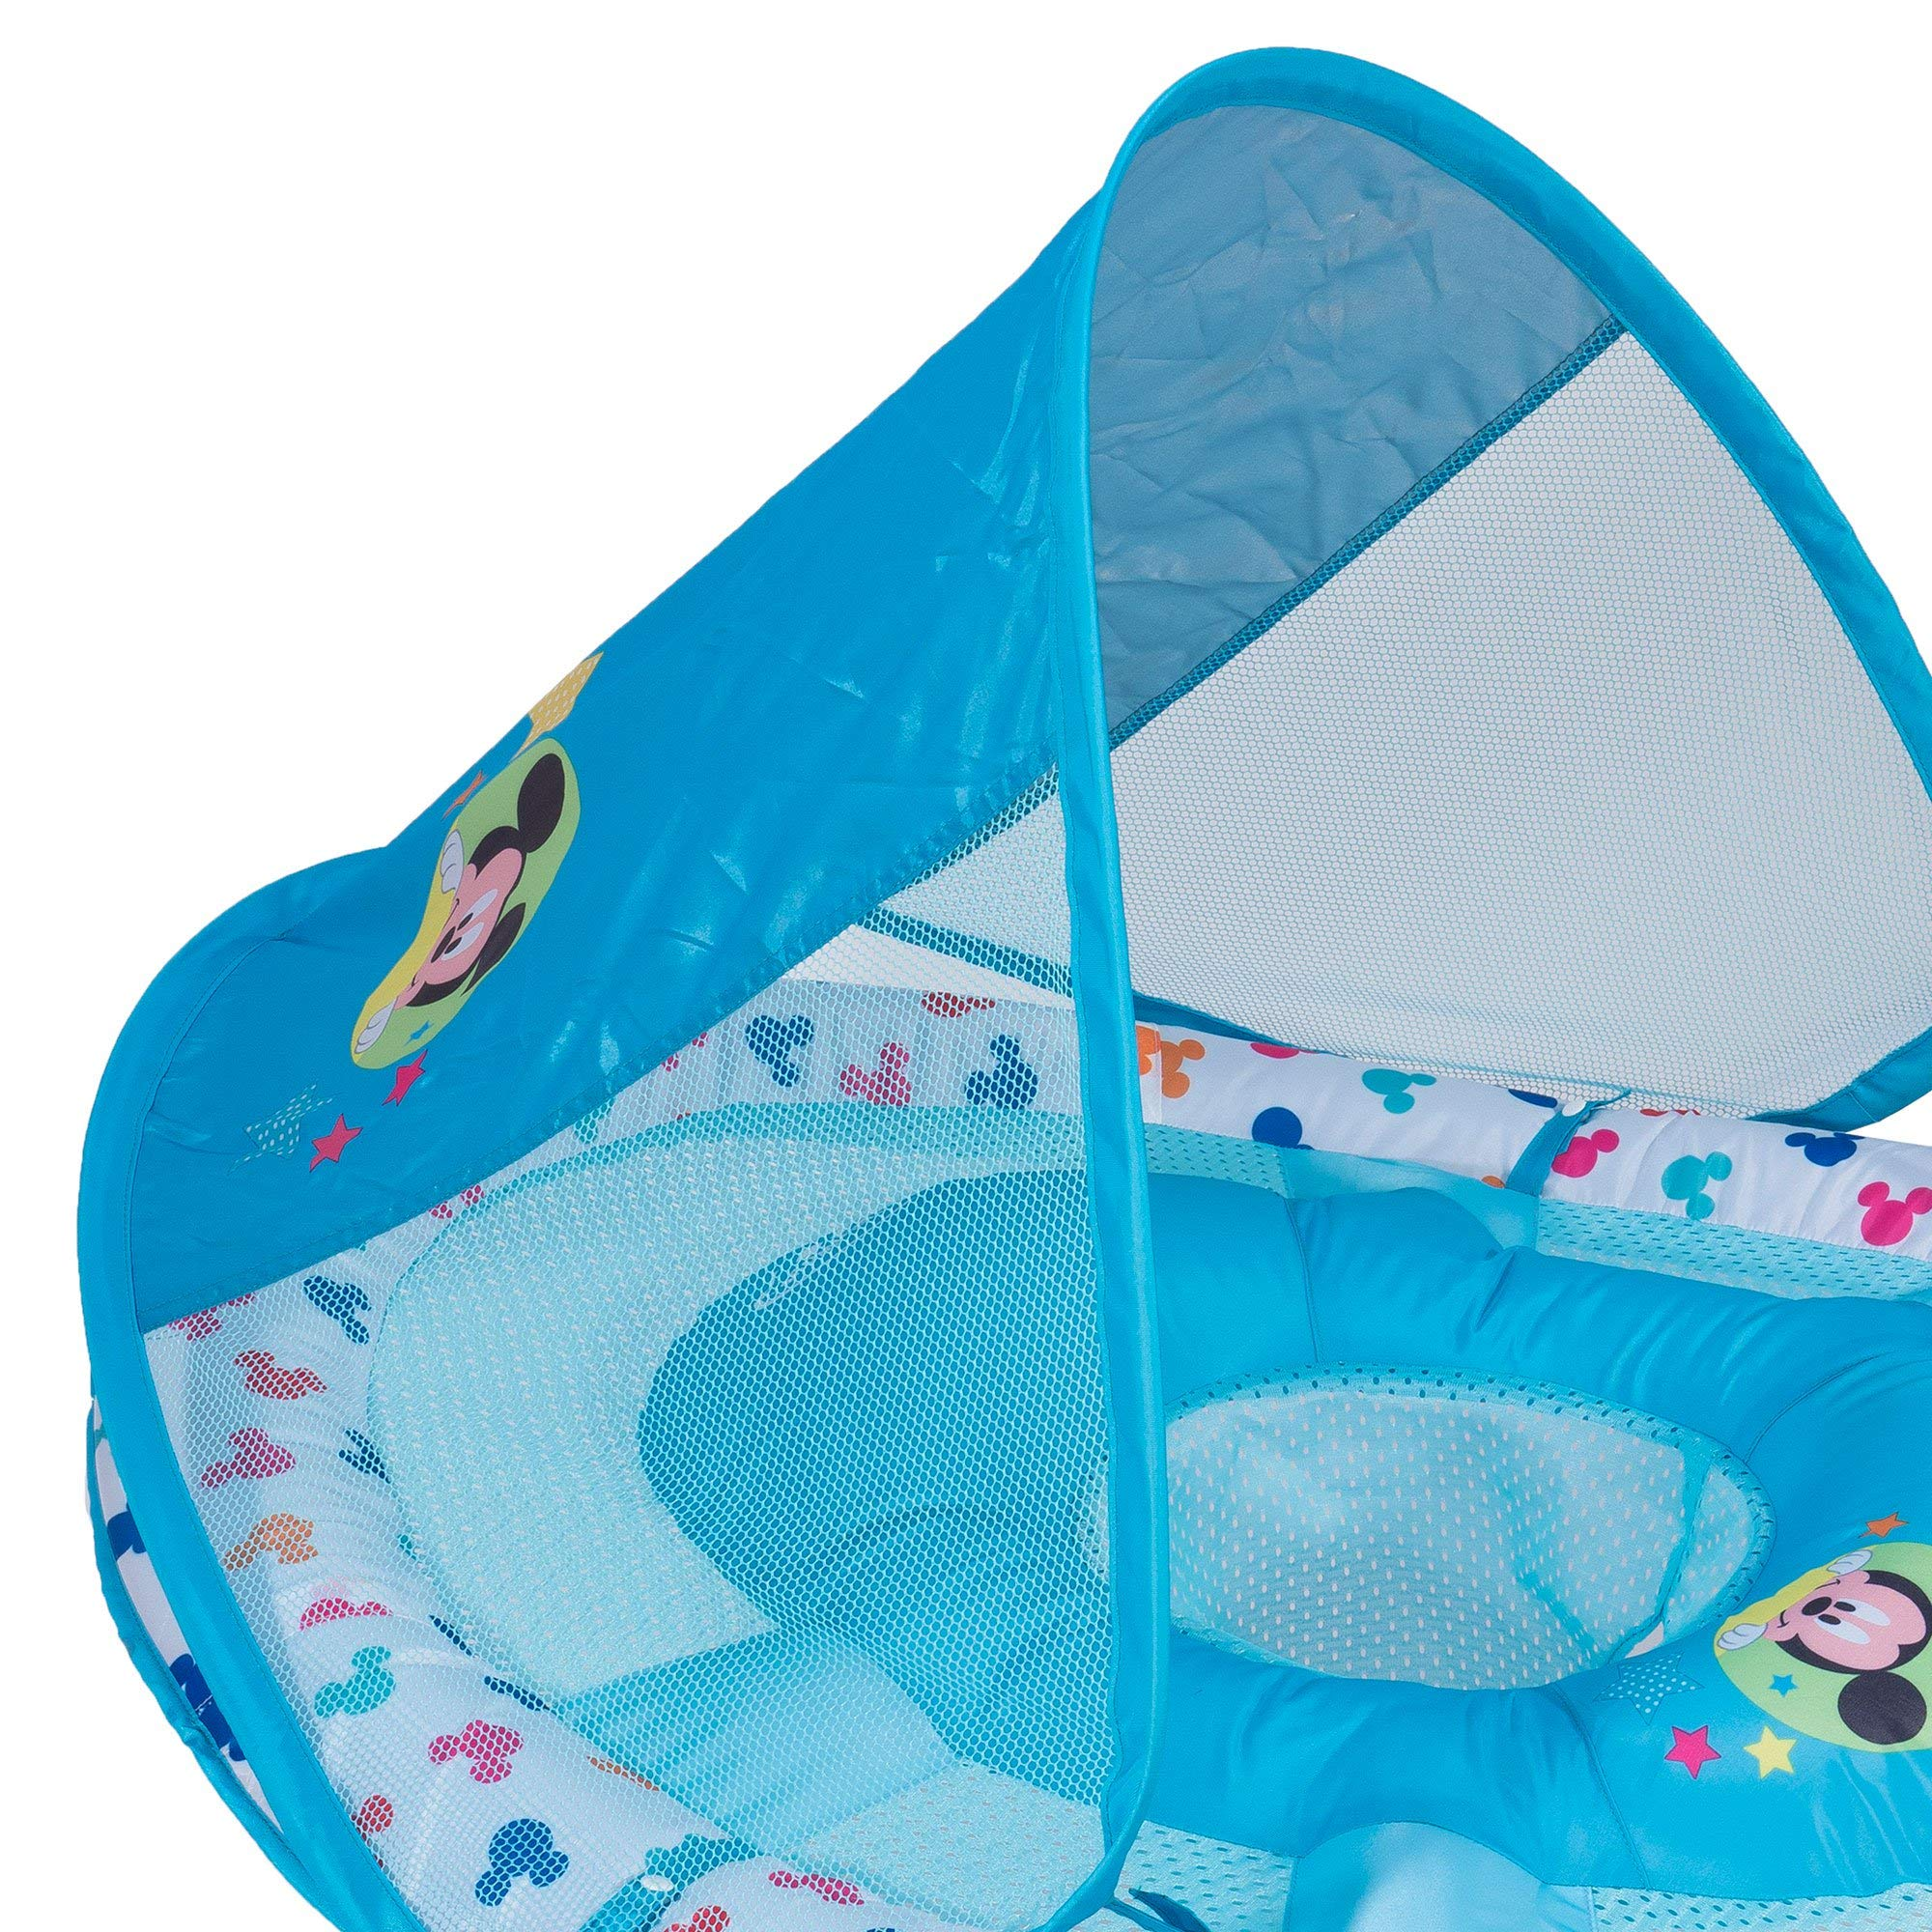 SwimWays Inflatable Infant Baby Swimming Pool Float w/Canopy, Mickey Mouse (2 Pack) by SwimWays (Image #6)